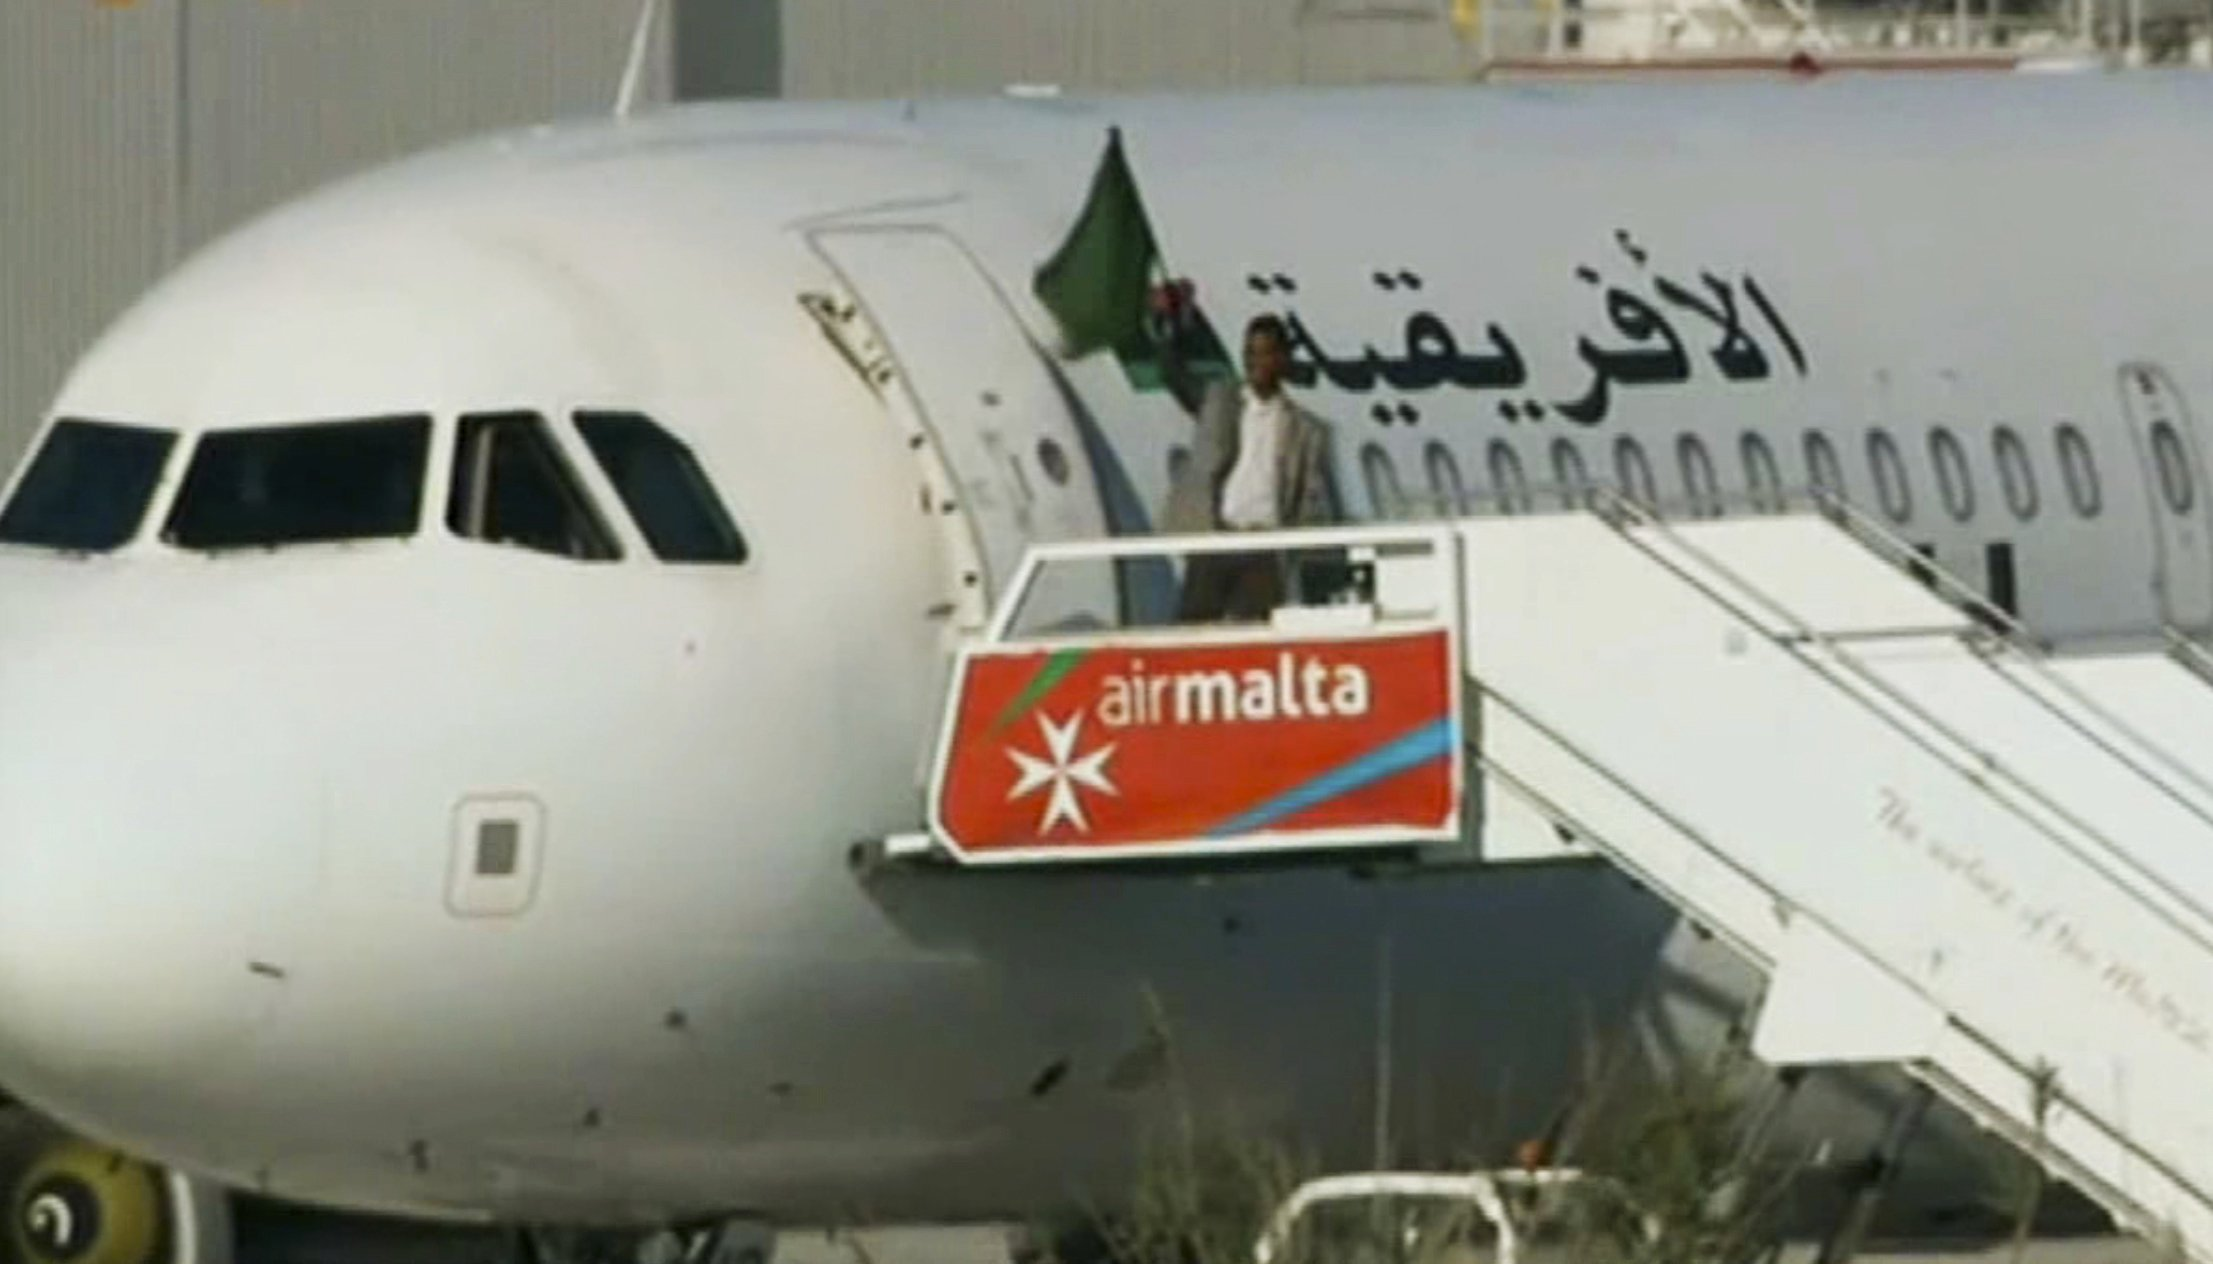 Malta plane hijacking ends peacefully; 2 Libyans surrender